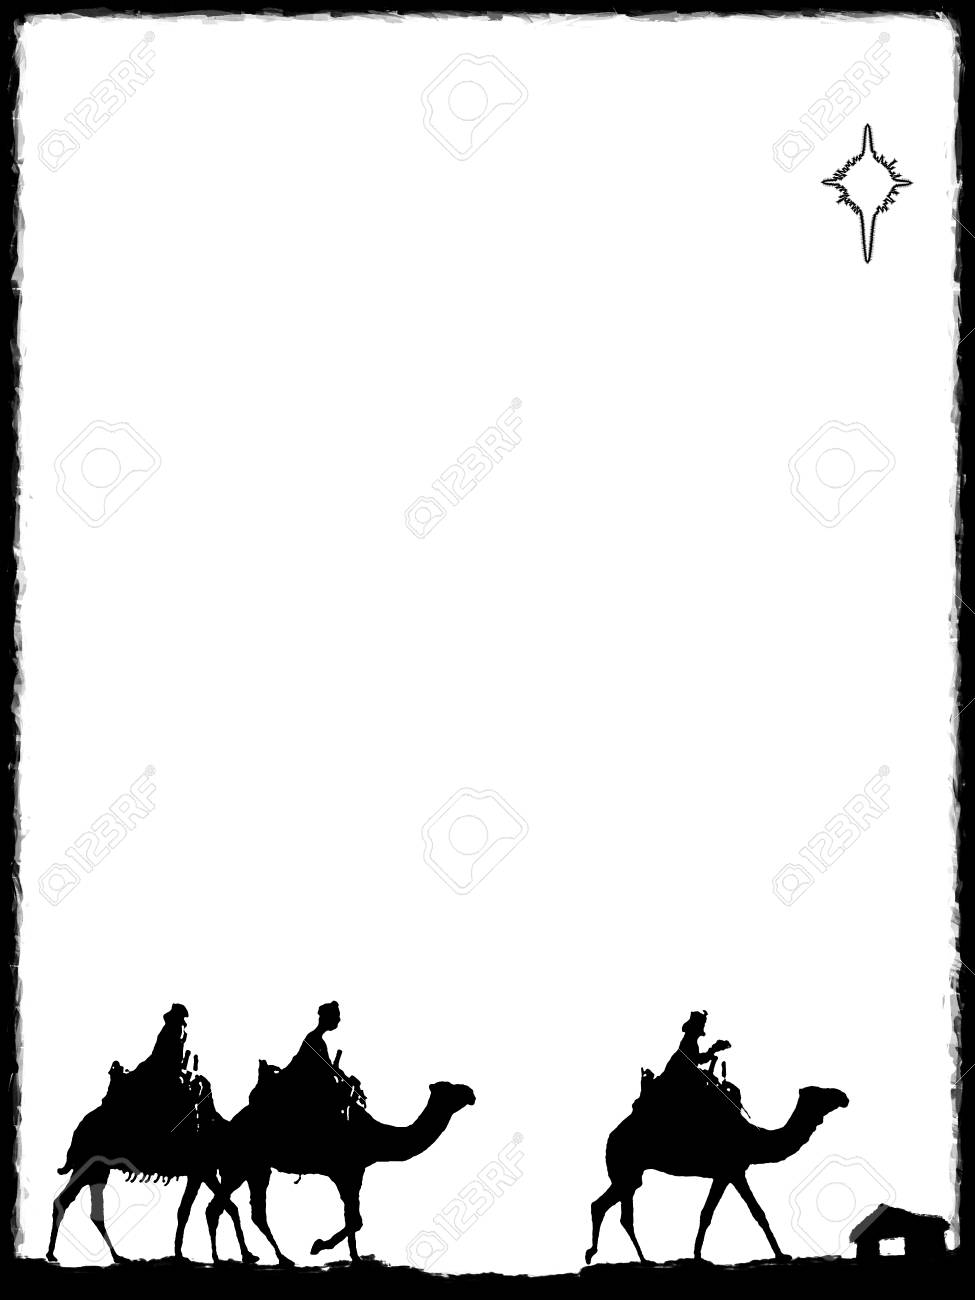 Three Wise Men on the way to Visit Jesus - Download Free Vectors, Clipart  Graphics & Vector Art